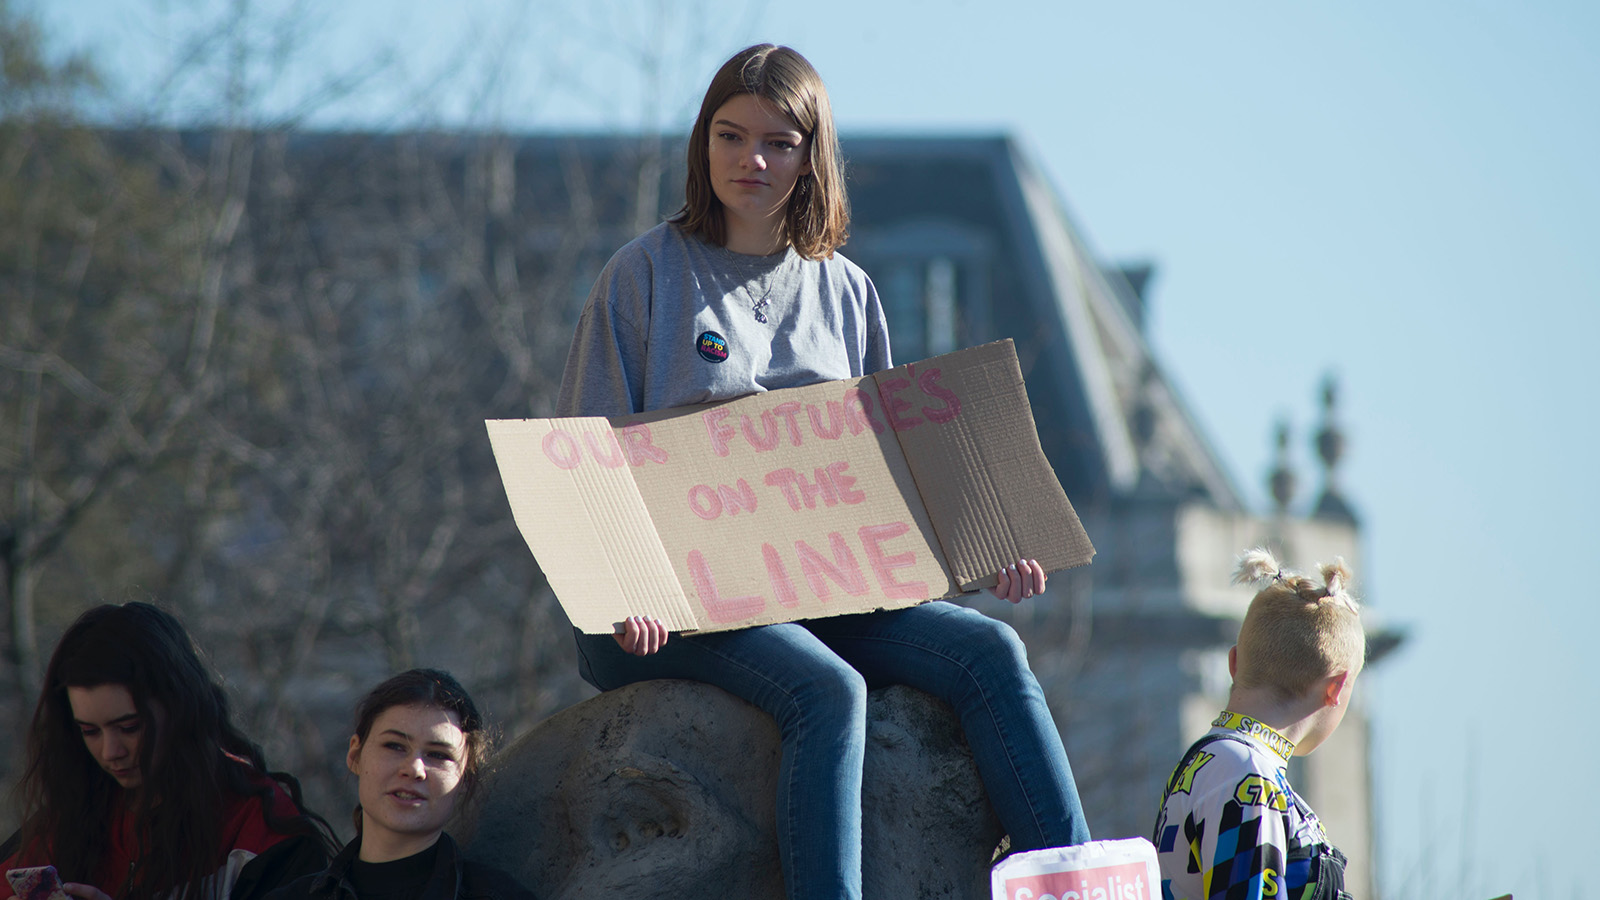 """Girl holding a sign that says """"Our Futures On The Line"""" at a protest."""